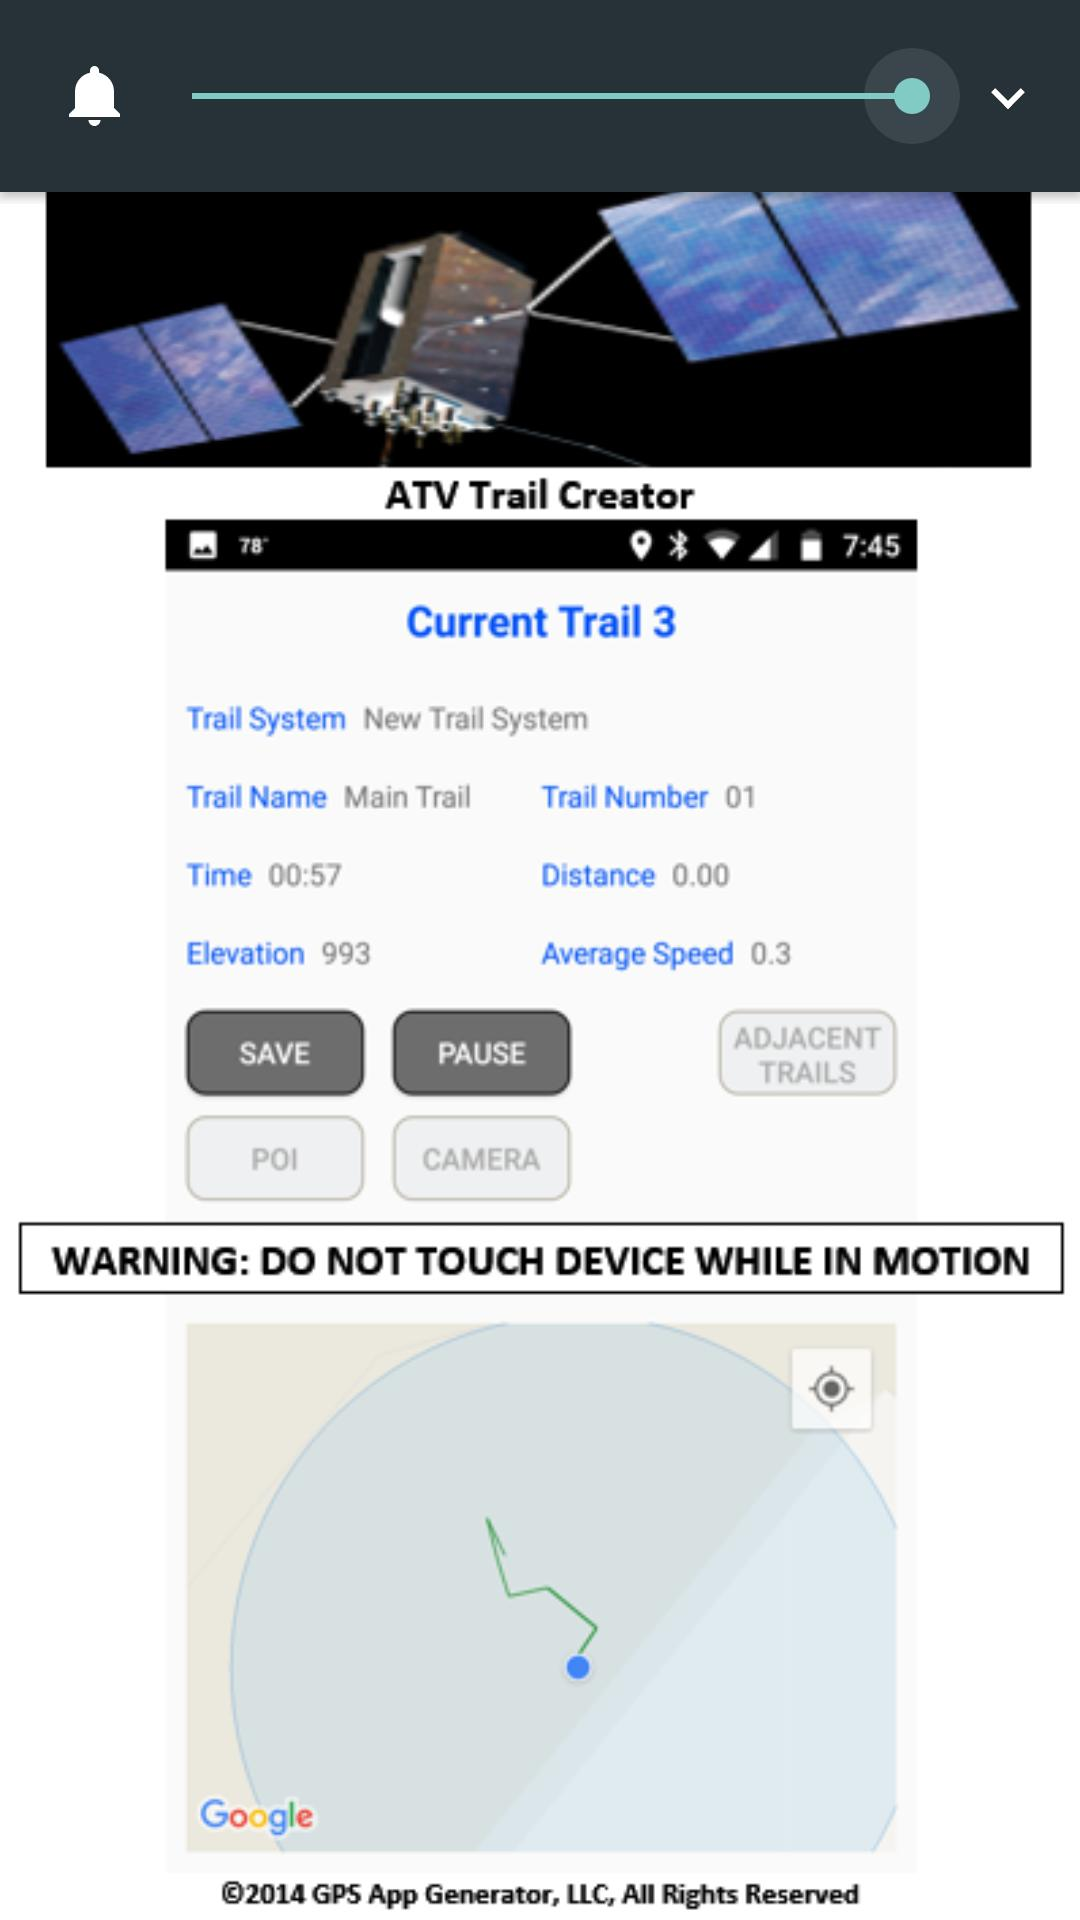 ATV Trail Creator for Android - APK Download